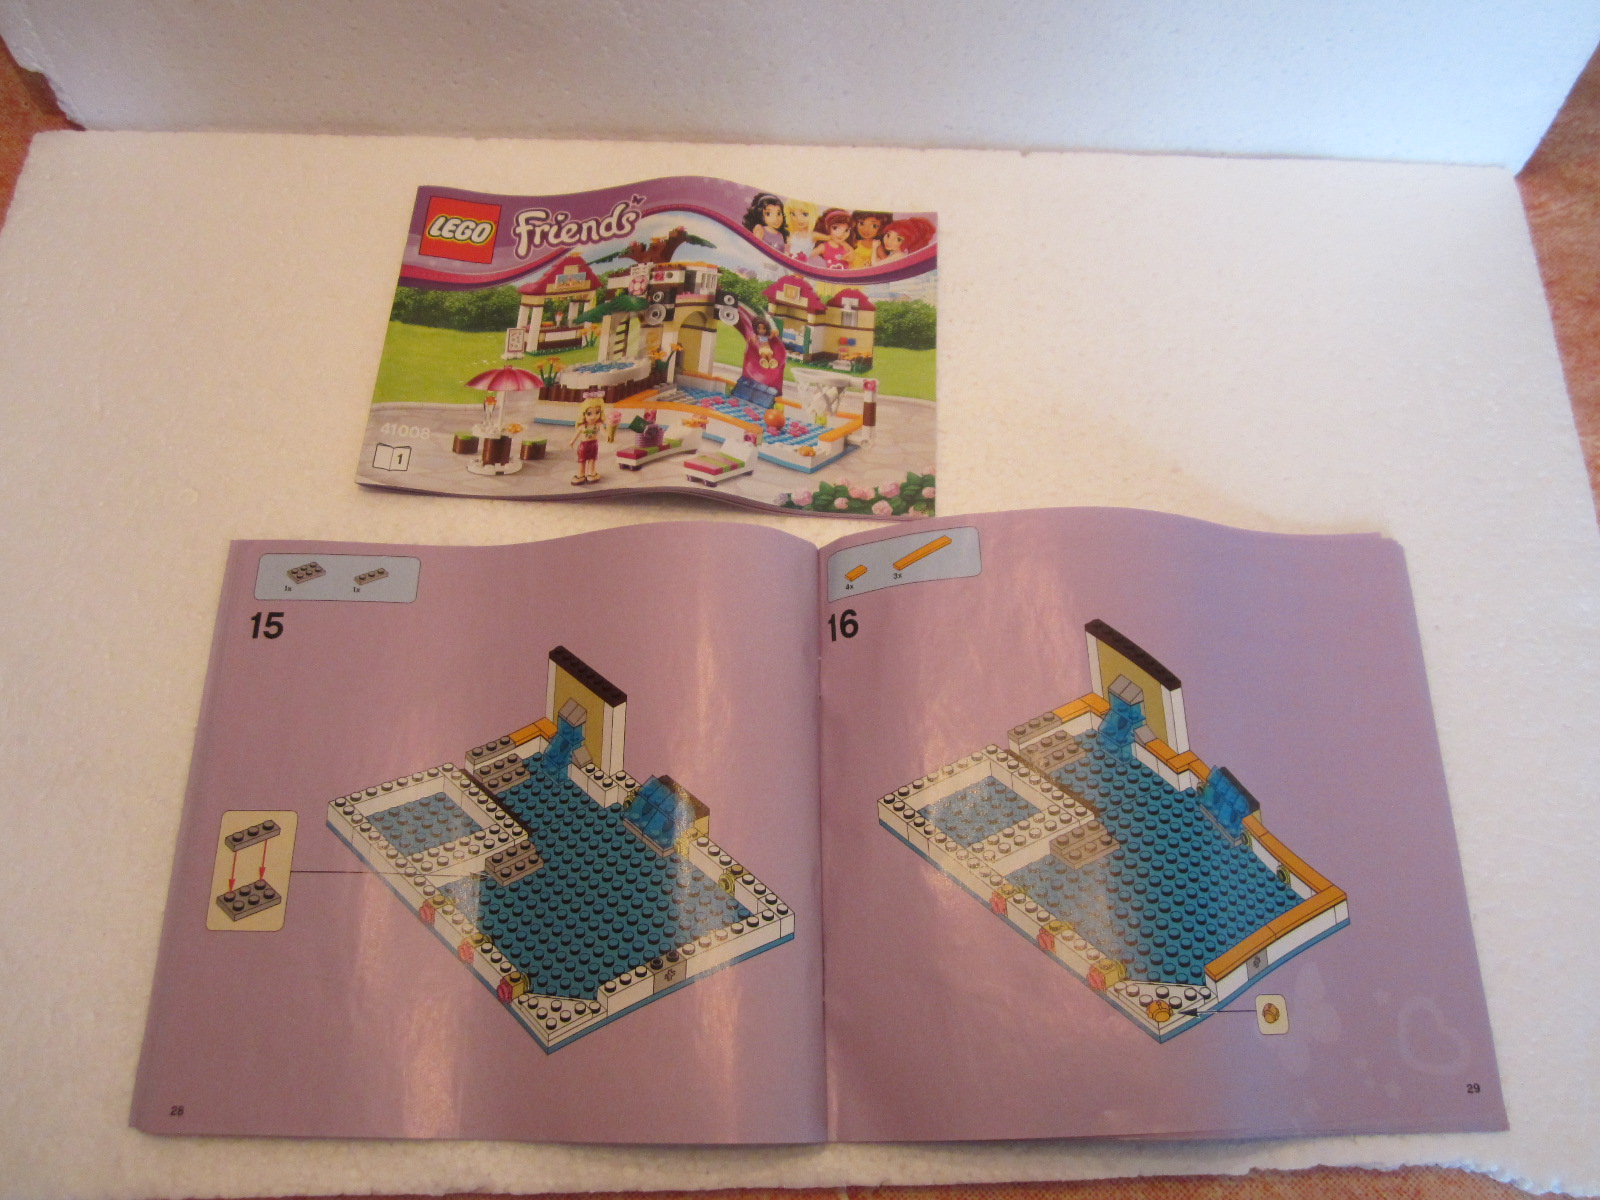 Très Lego Friends 41008 : La piscine d'Heartlake City | Lego(R) by Alkinoos VV54